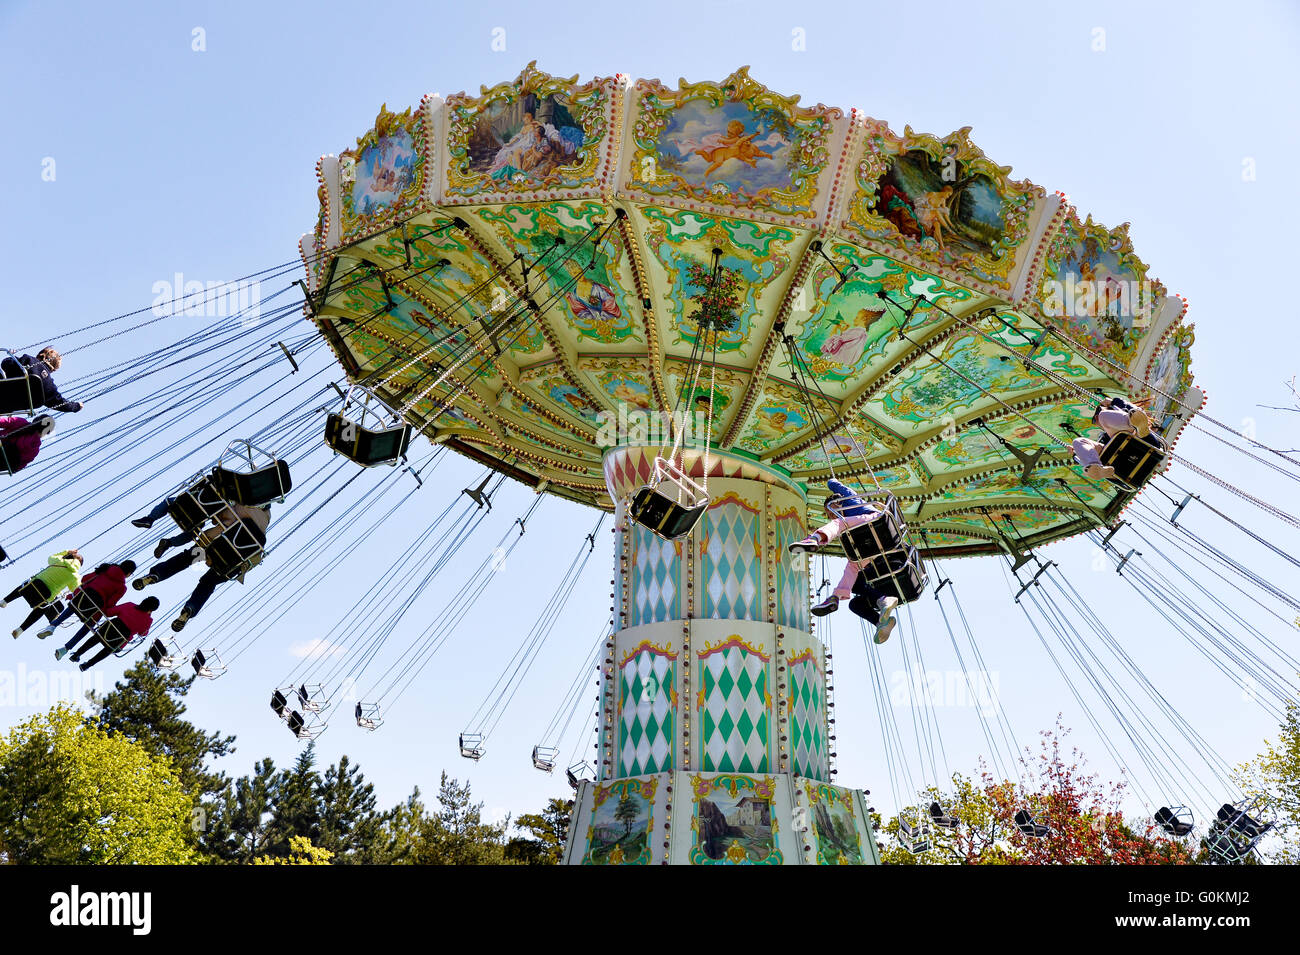 View of jardin d'acclimatation in Paris - Stock Image